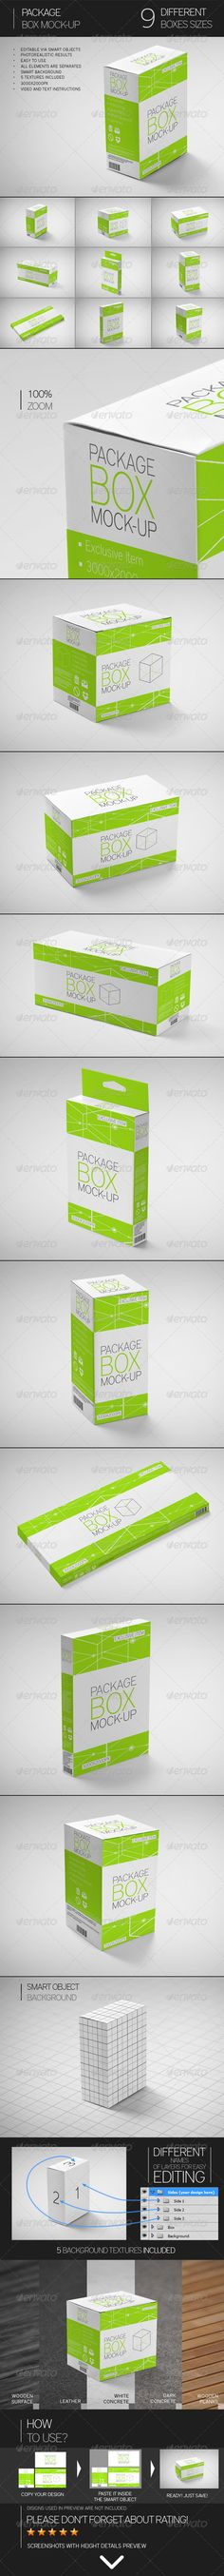 Package Box Mock-Up. 9 photorealistic mock-ups, editable via smart objects, easy to use.